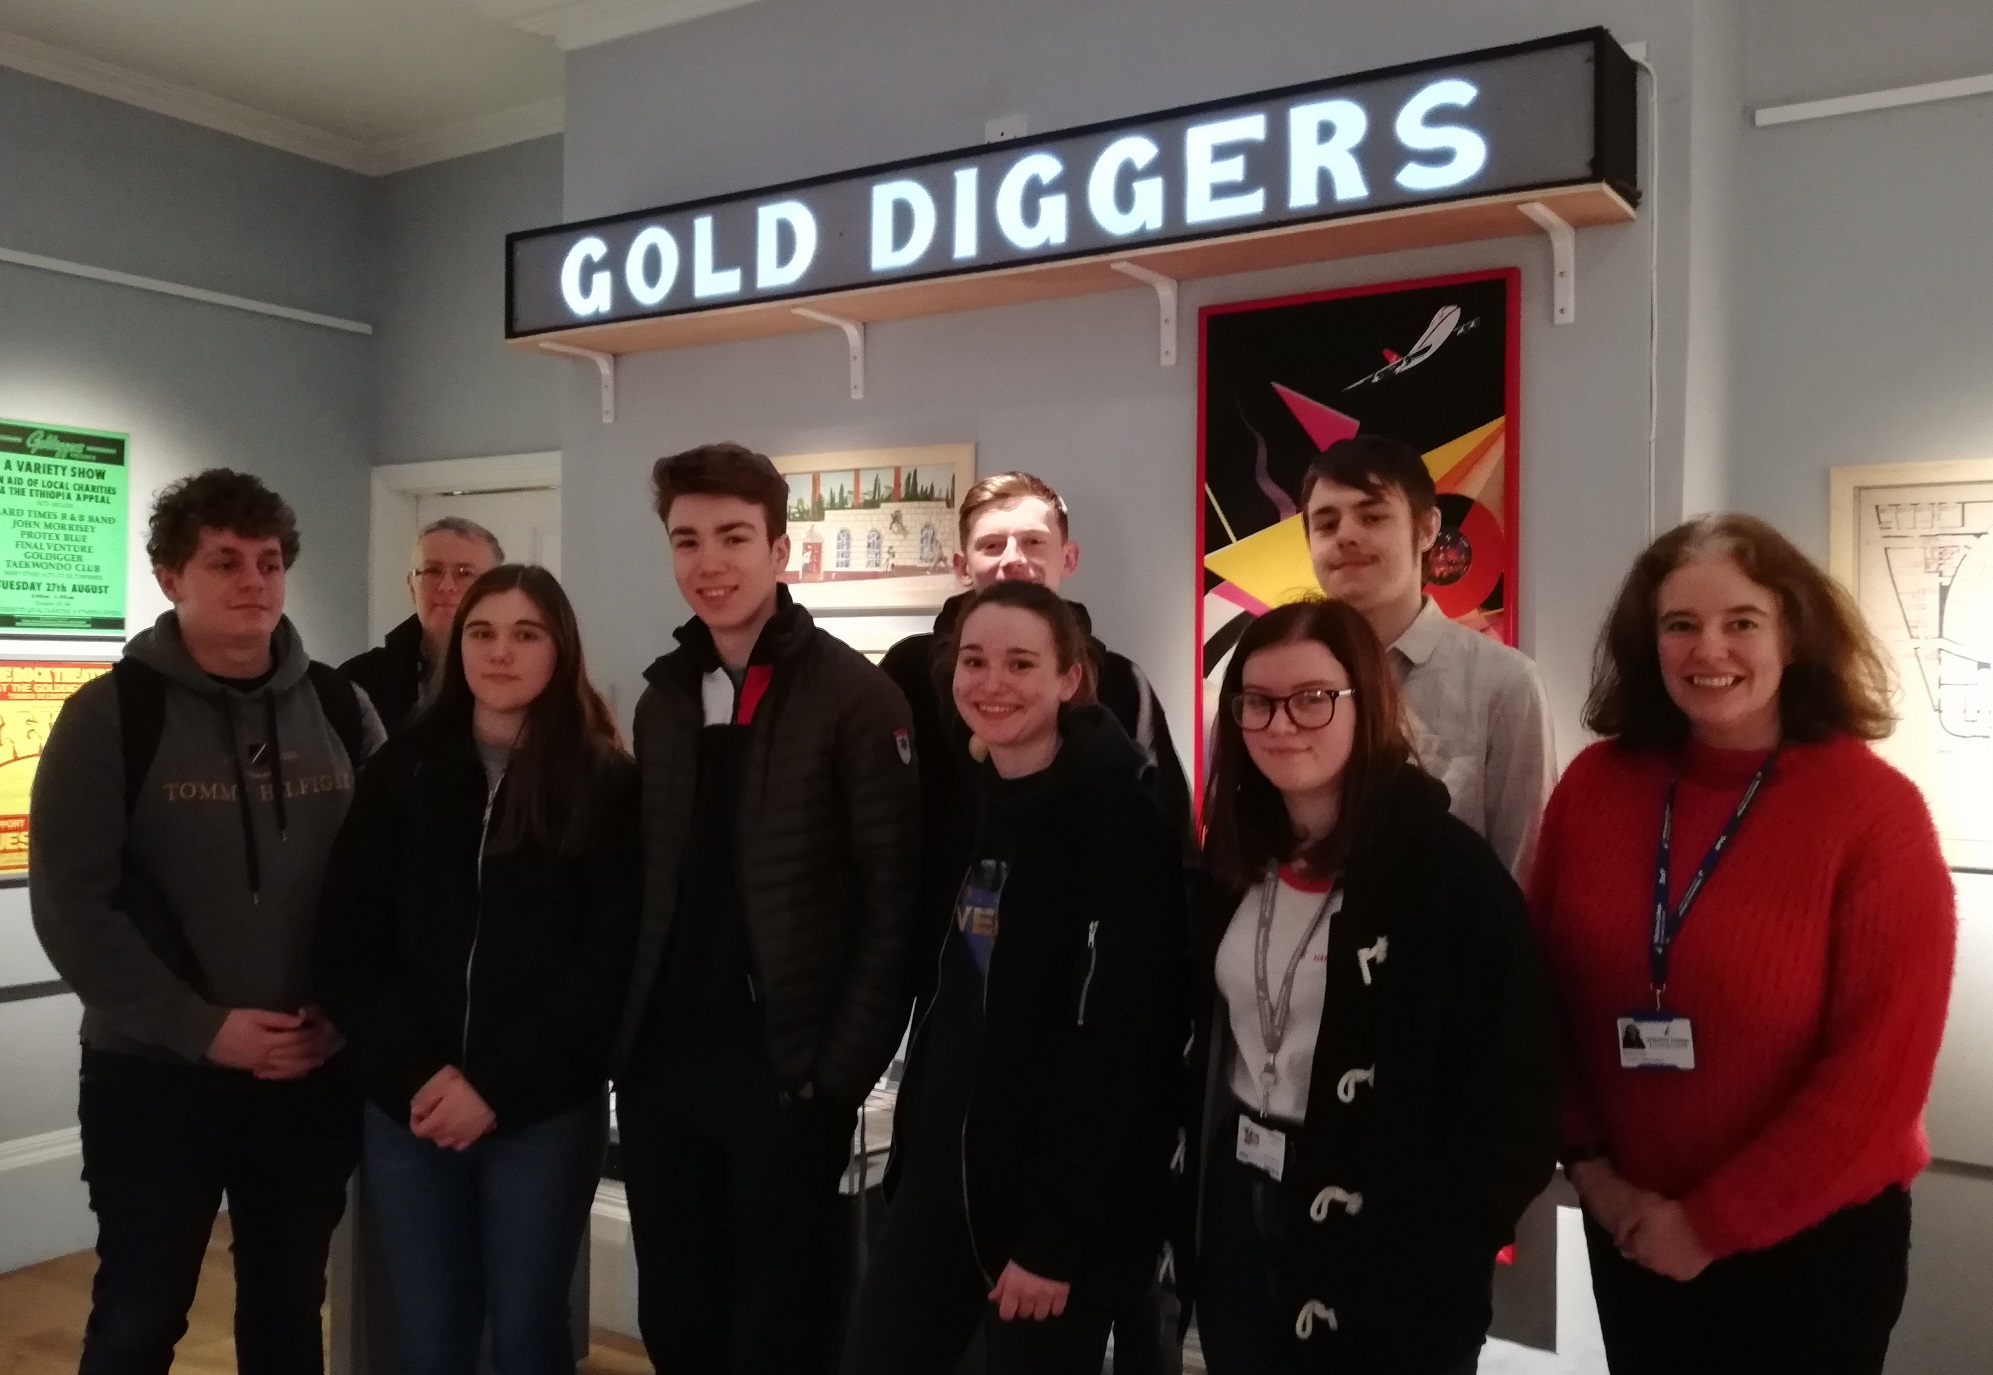 group of students inside goldiggers exhibition